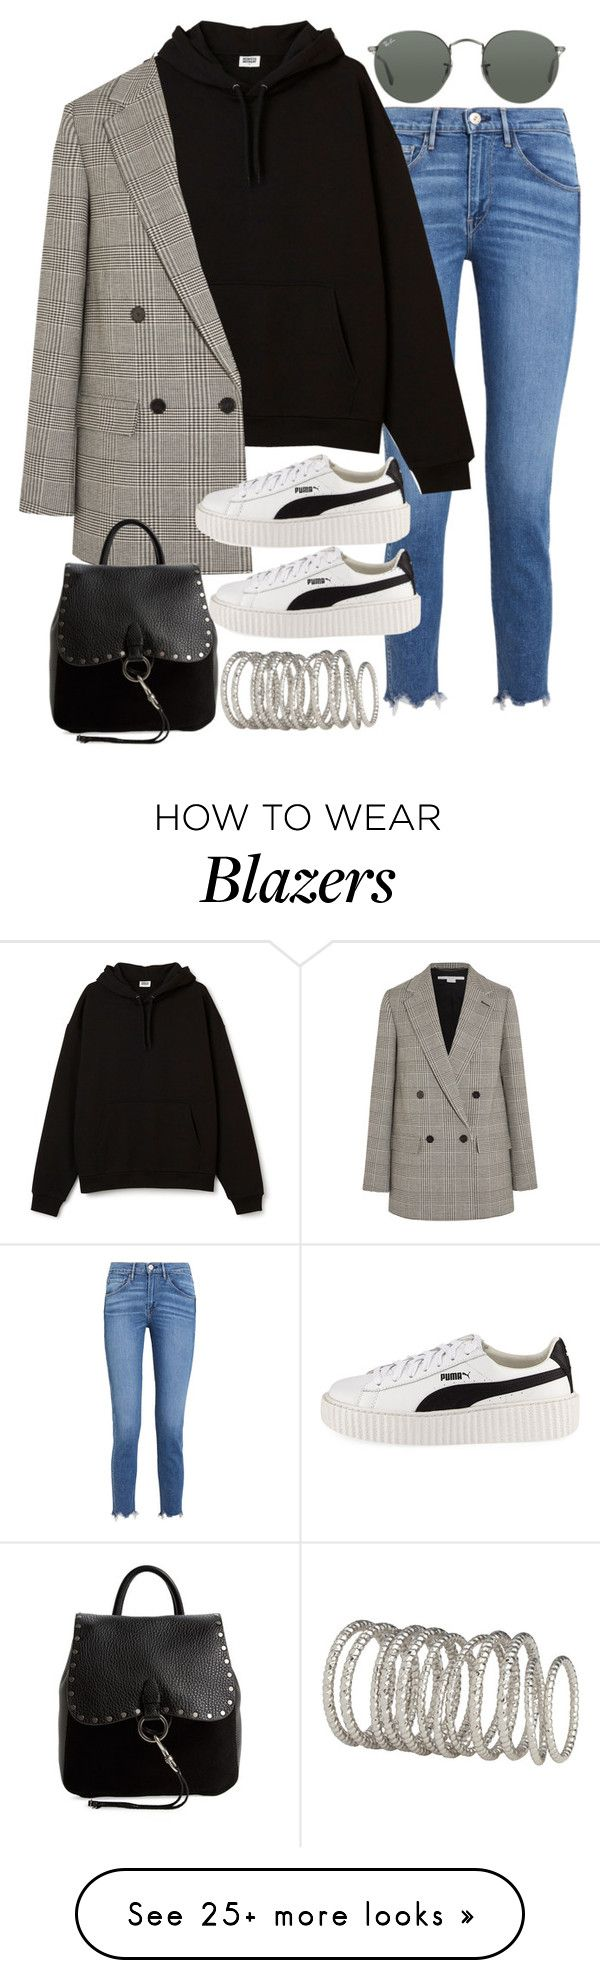 """Sin título #2374"" by alx97 on Polyvore featuring 3x1, STELLA McCARTNEY, Puma, Rebecca Minkoff, Ray-Ban and H&M"